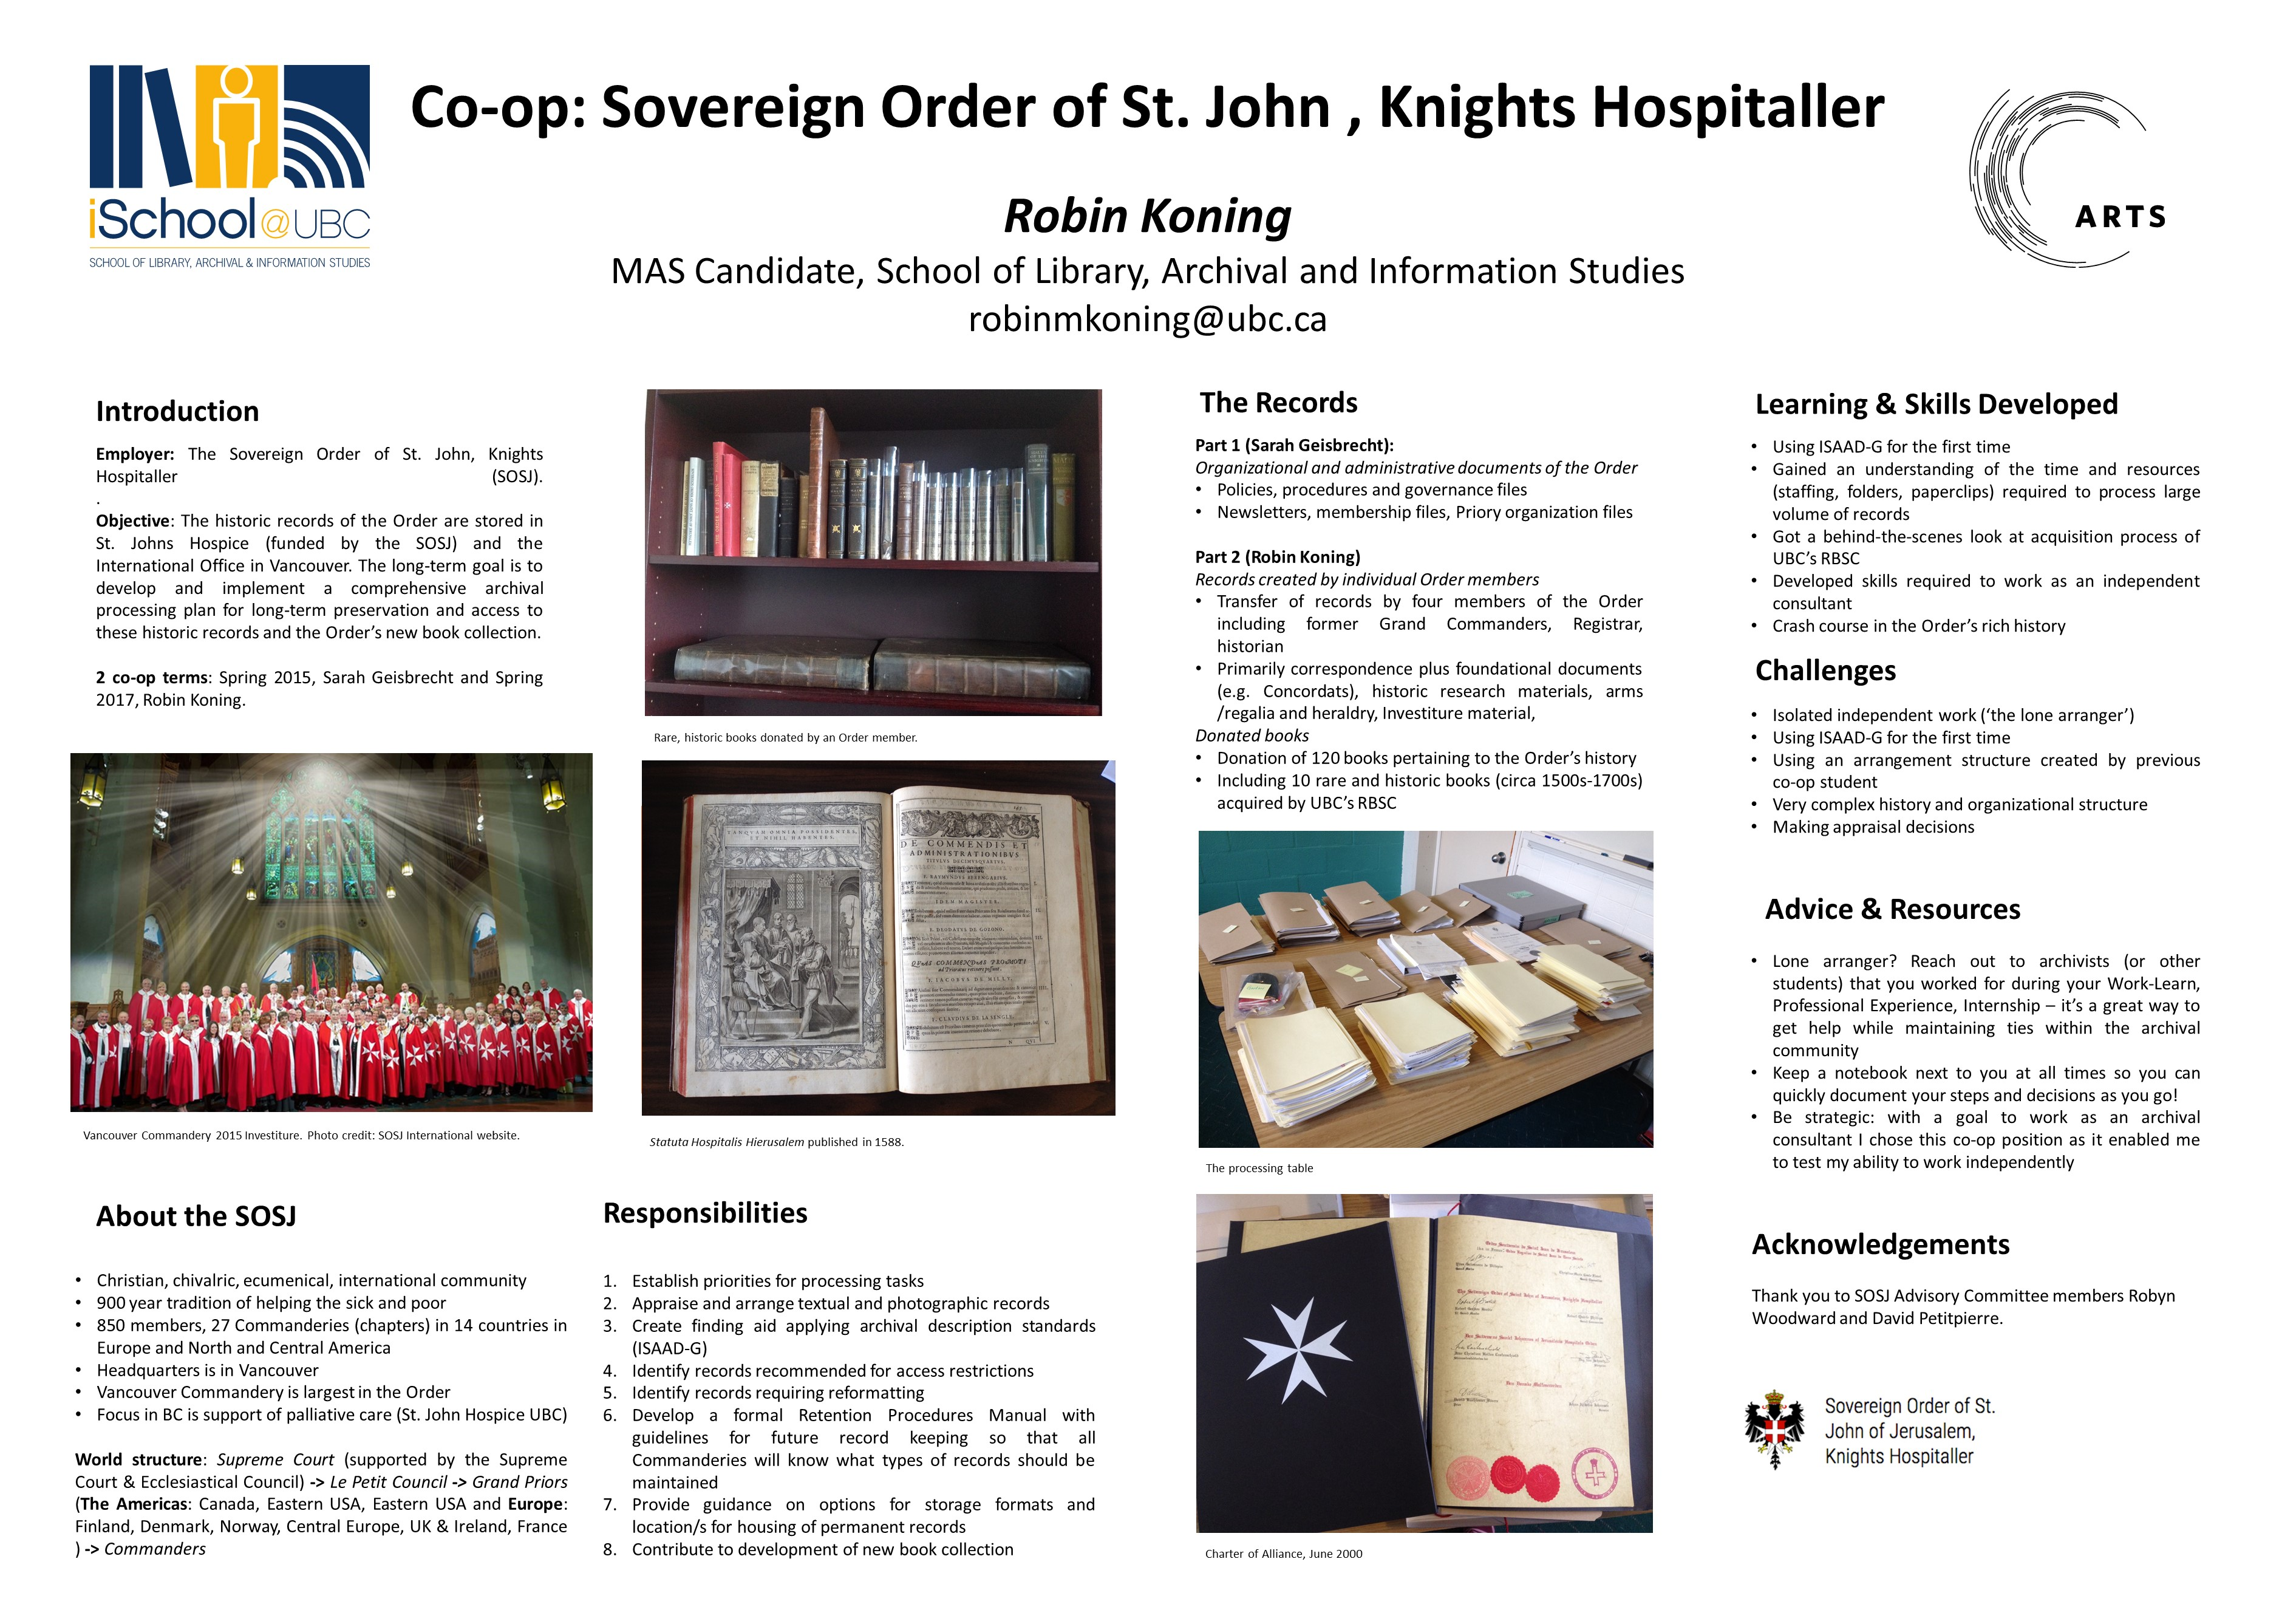 Experiential learning day ubc ischool sovereign order of st john knights hospitaller robin koning 1betcityfo Choice Image